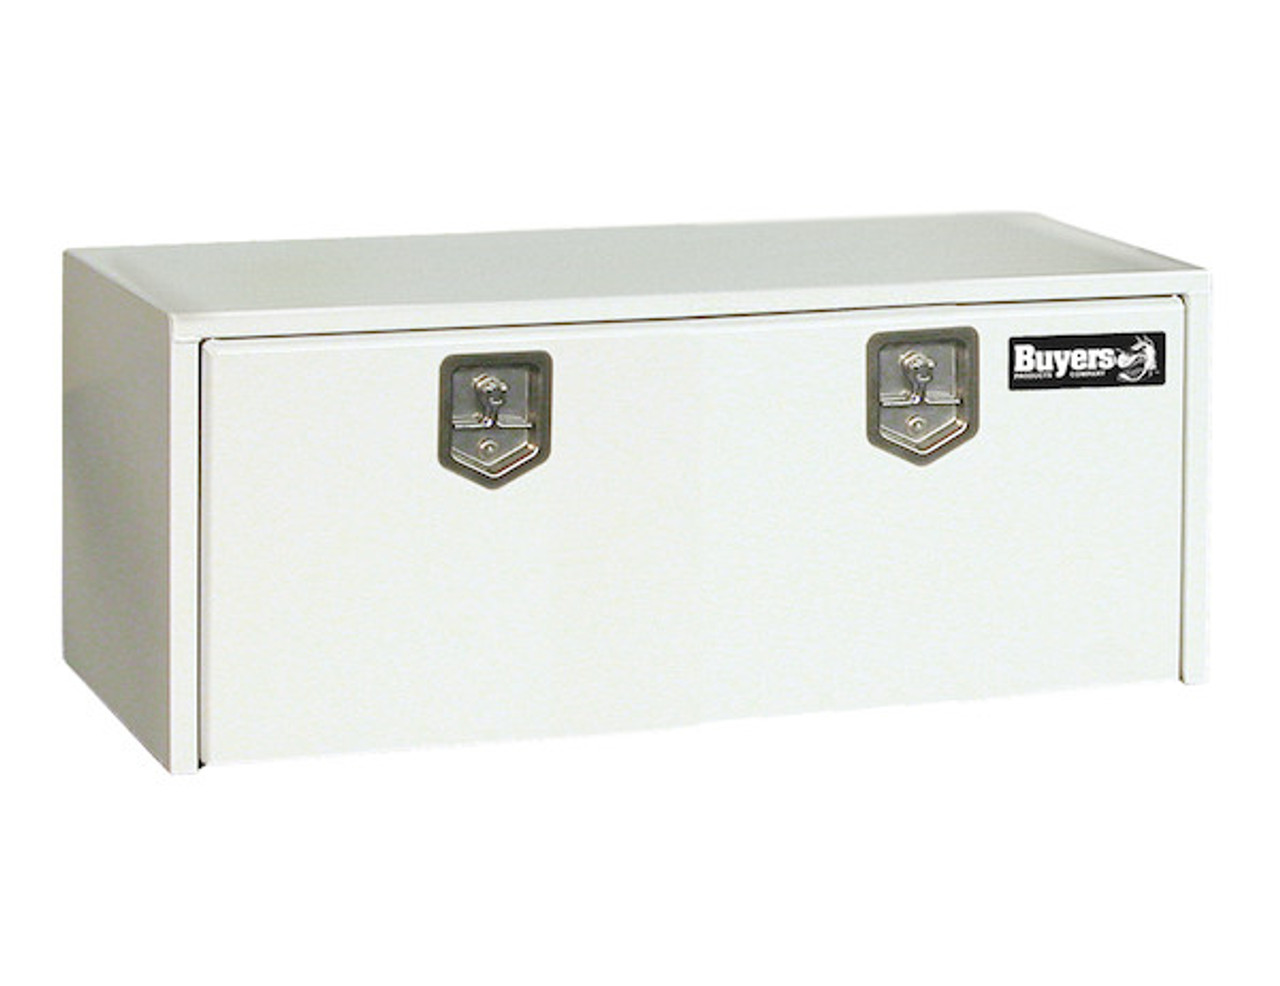 """1702417 BUYERS PRODUCTS WHITE STEEL UNDERBODY TRUCK TOOLBOX 18""""HX18""""DX66""""W"""